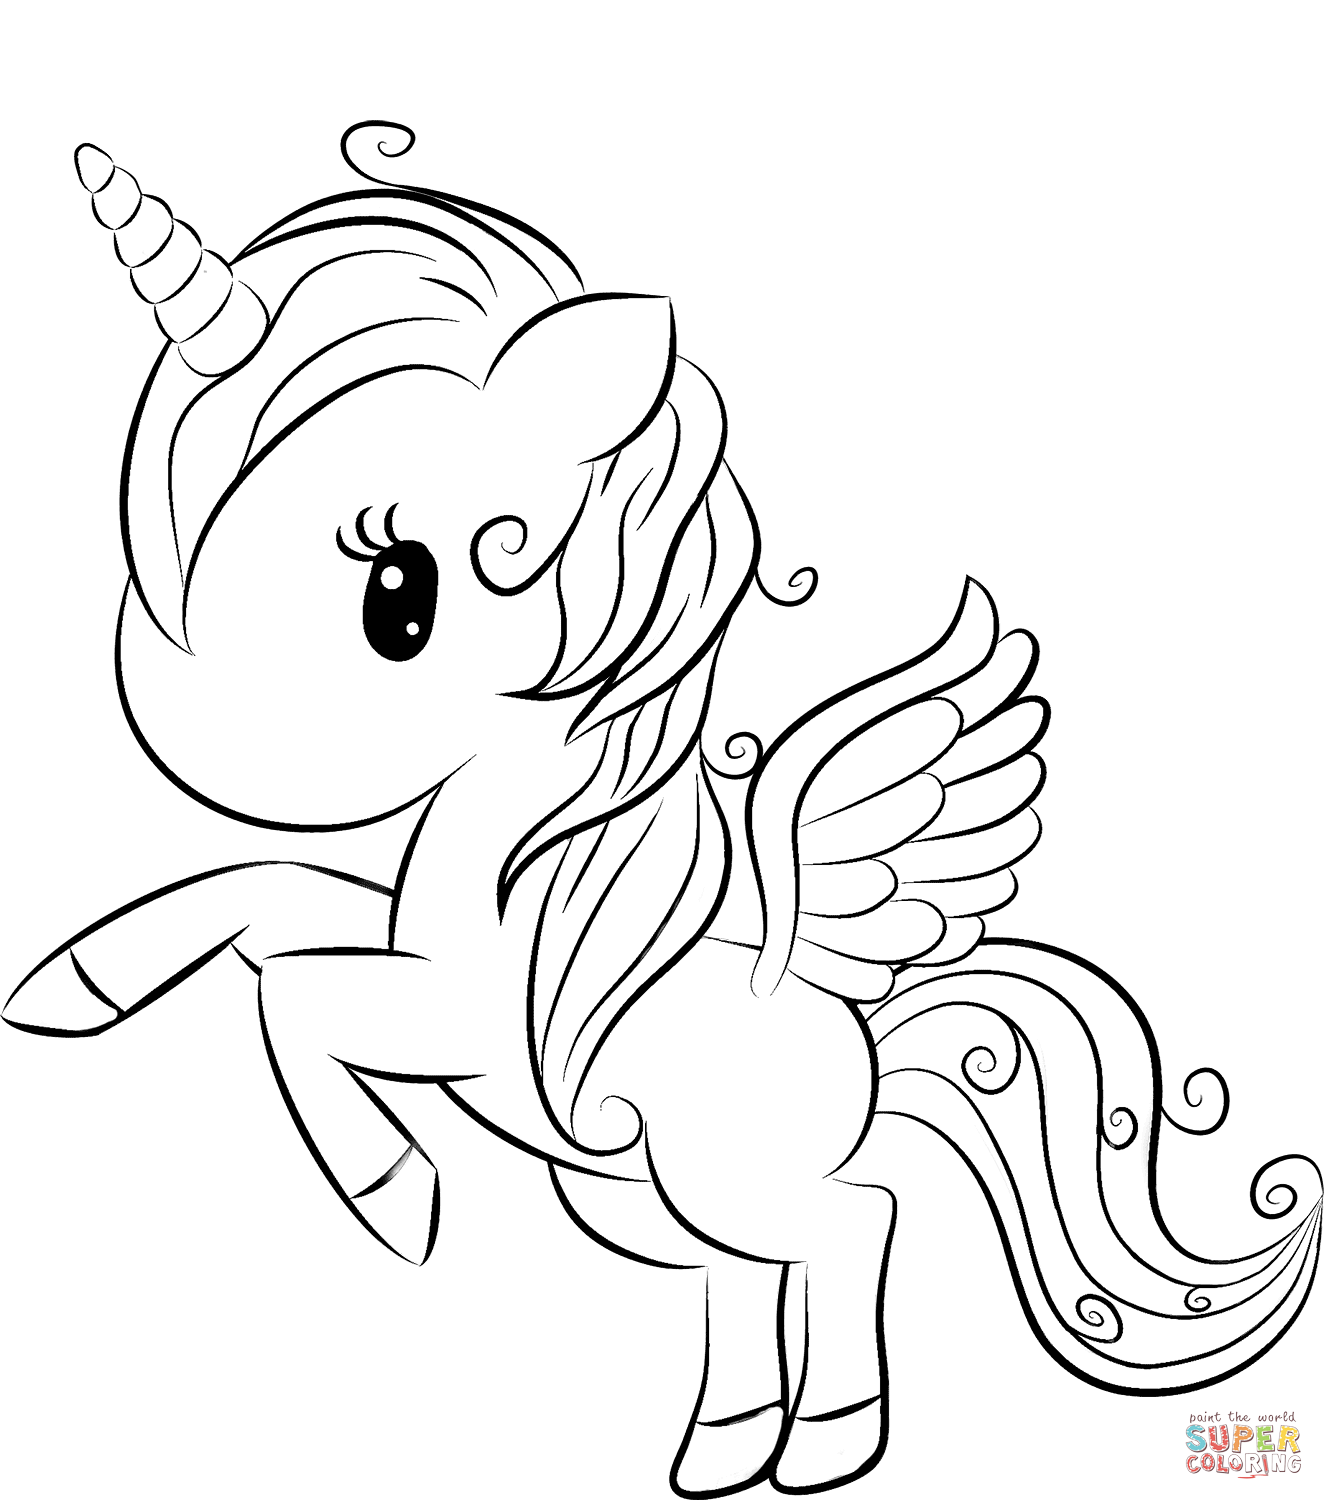 Cute Unicorn Coloring Page Free Printable Coloring Pages Unicorn Coloring Pages Princess Coloring Pages Cute Coloring Pages